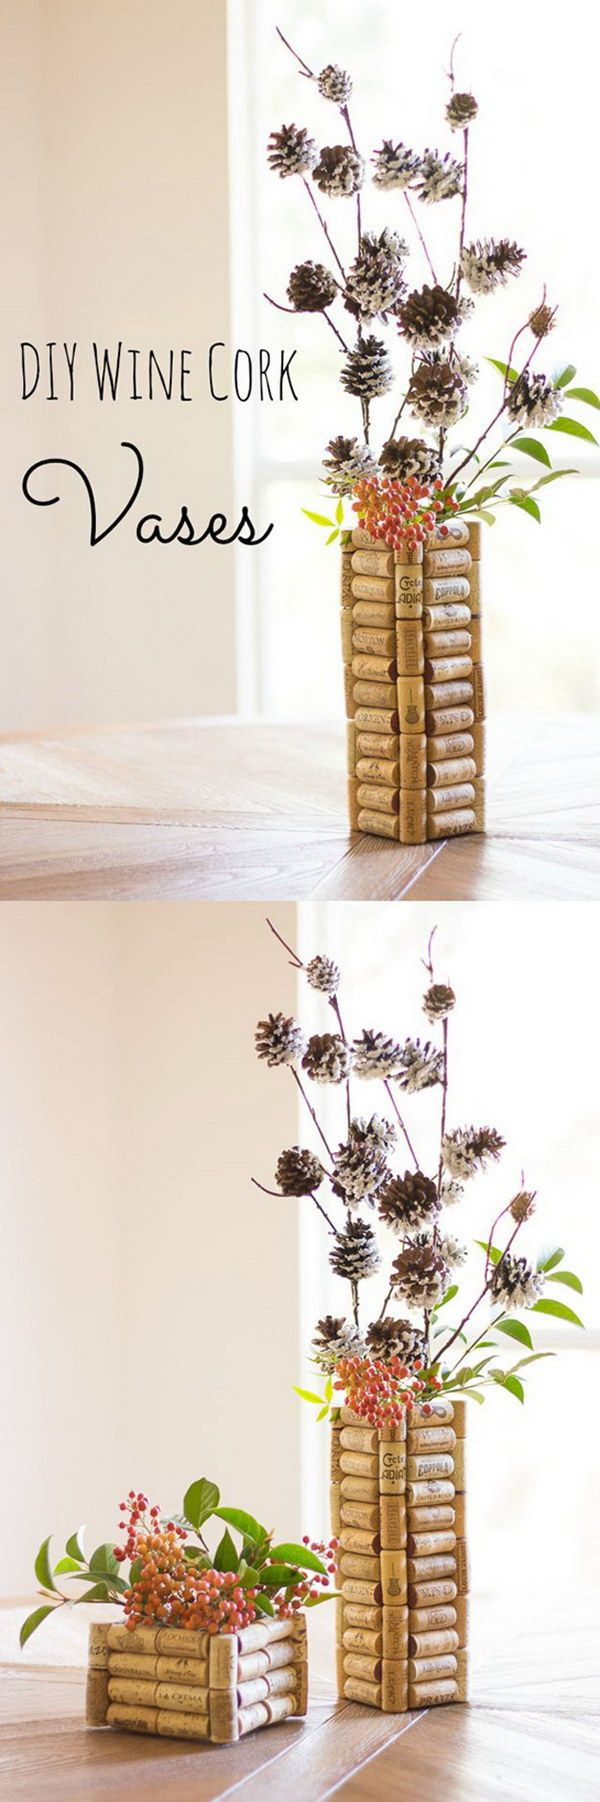 15 Fun and Cute Spring DIY Projects to Spruce Up Your Home | Cork ...